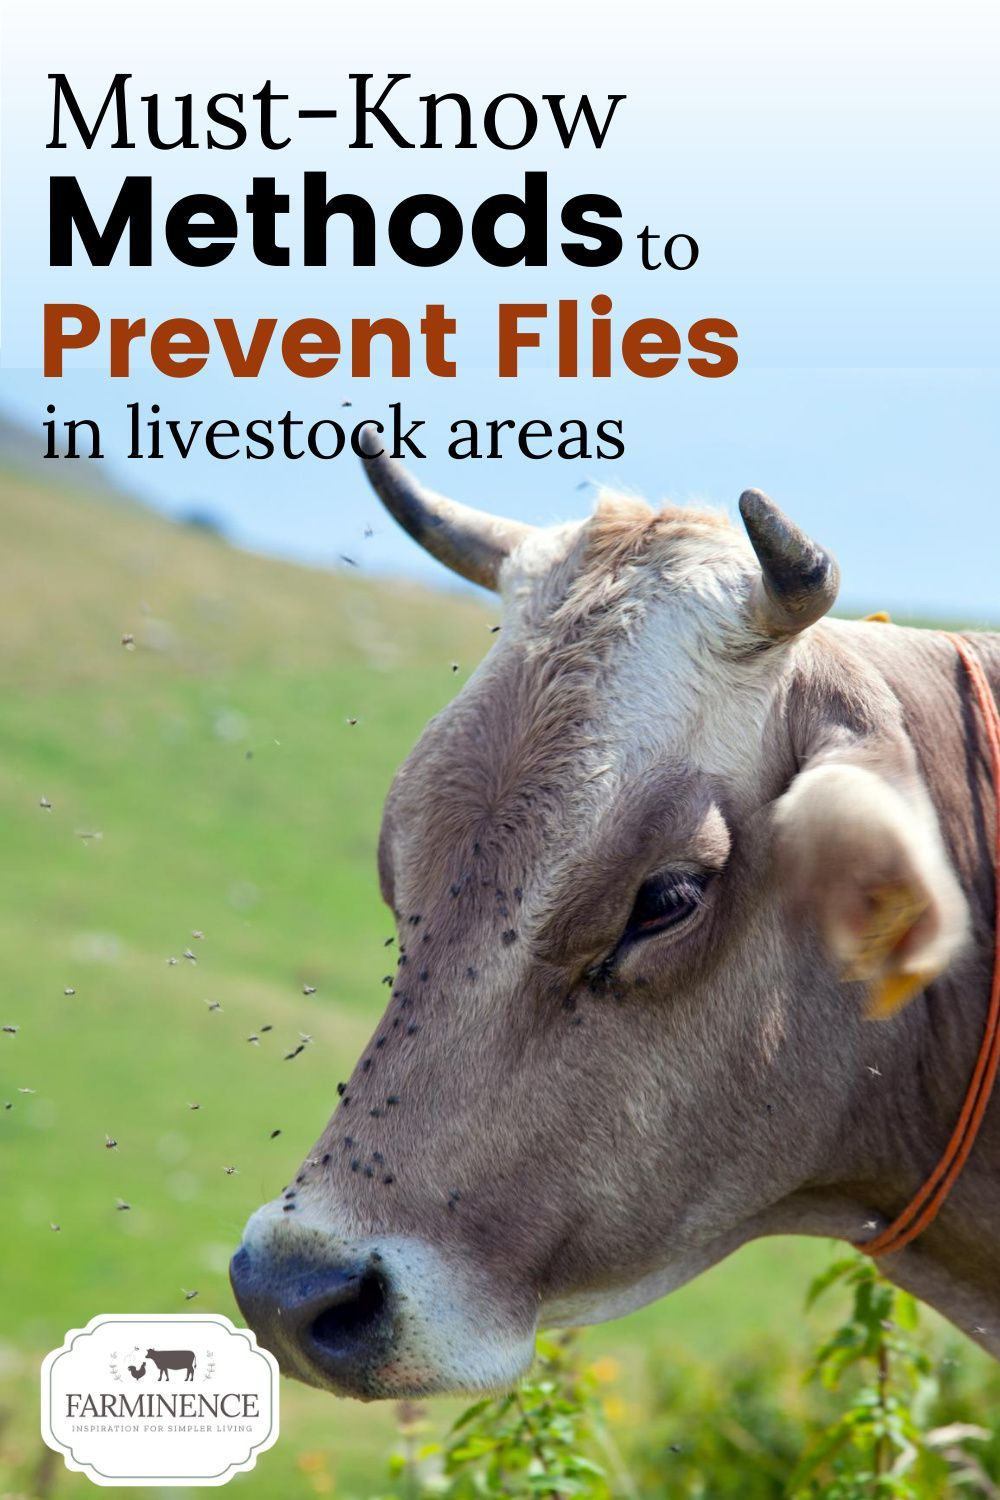 Best fly control methods for livestock areas farminence